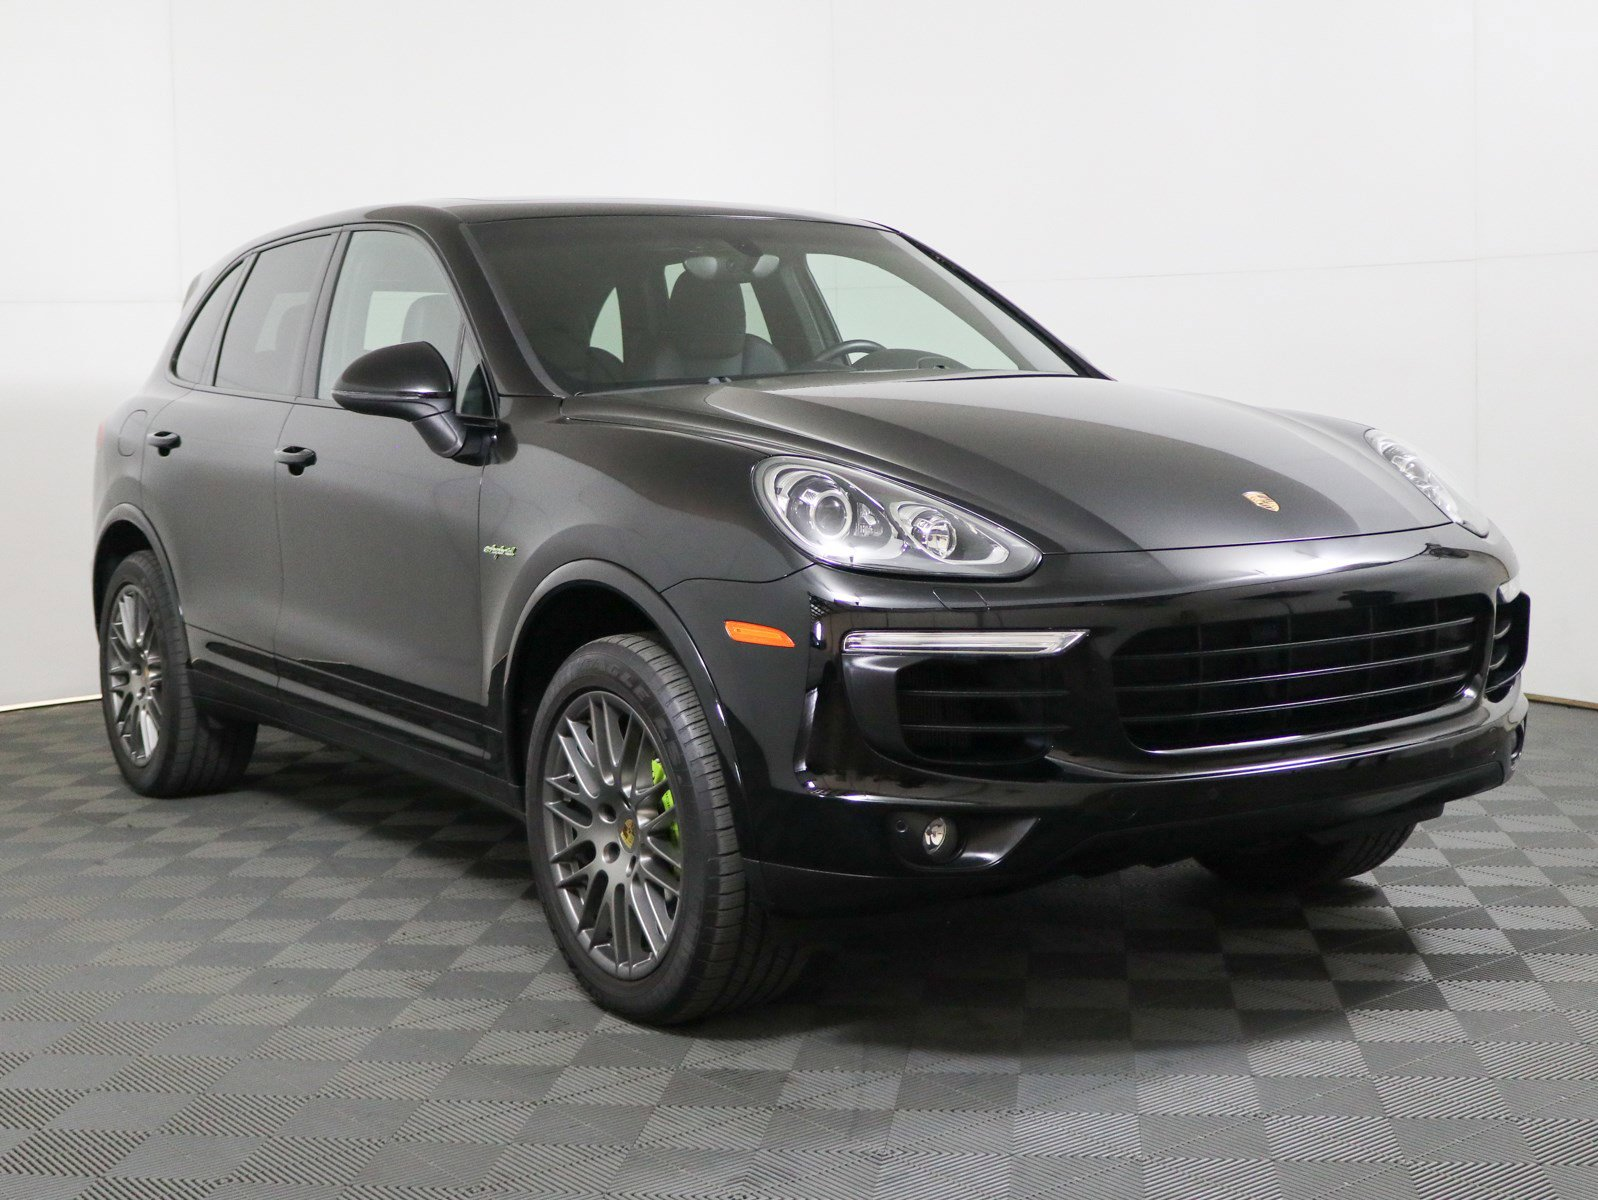 Certified Pre-Owned 2017 Porsche Cayenne S E-Hybrid Platinum Edition